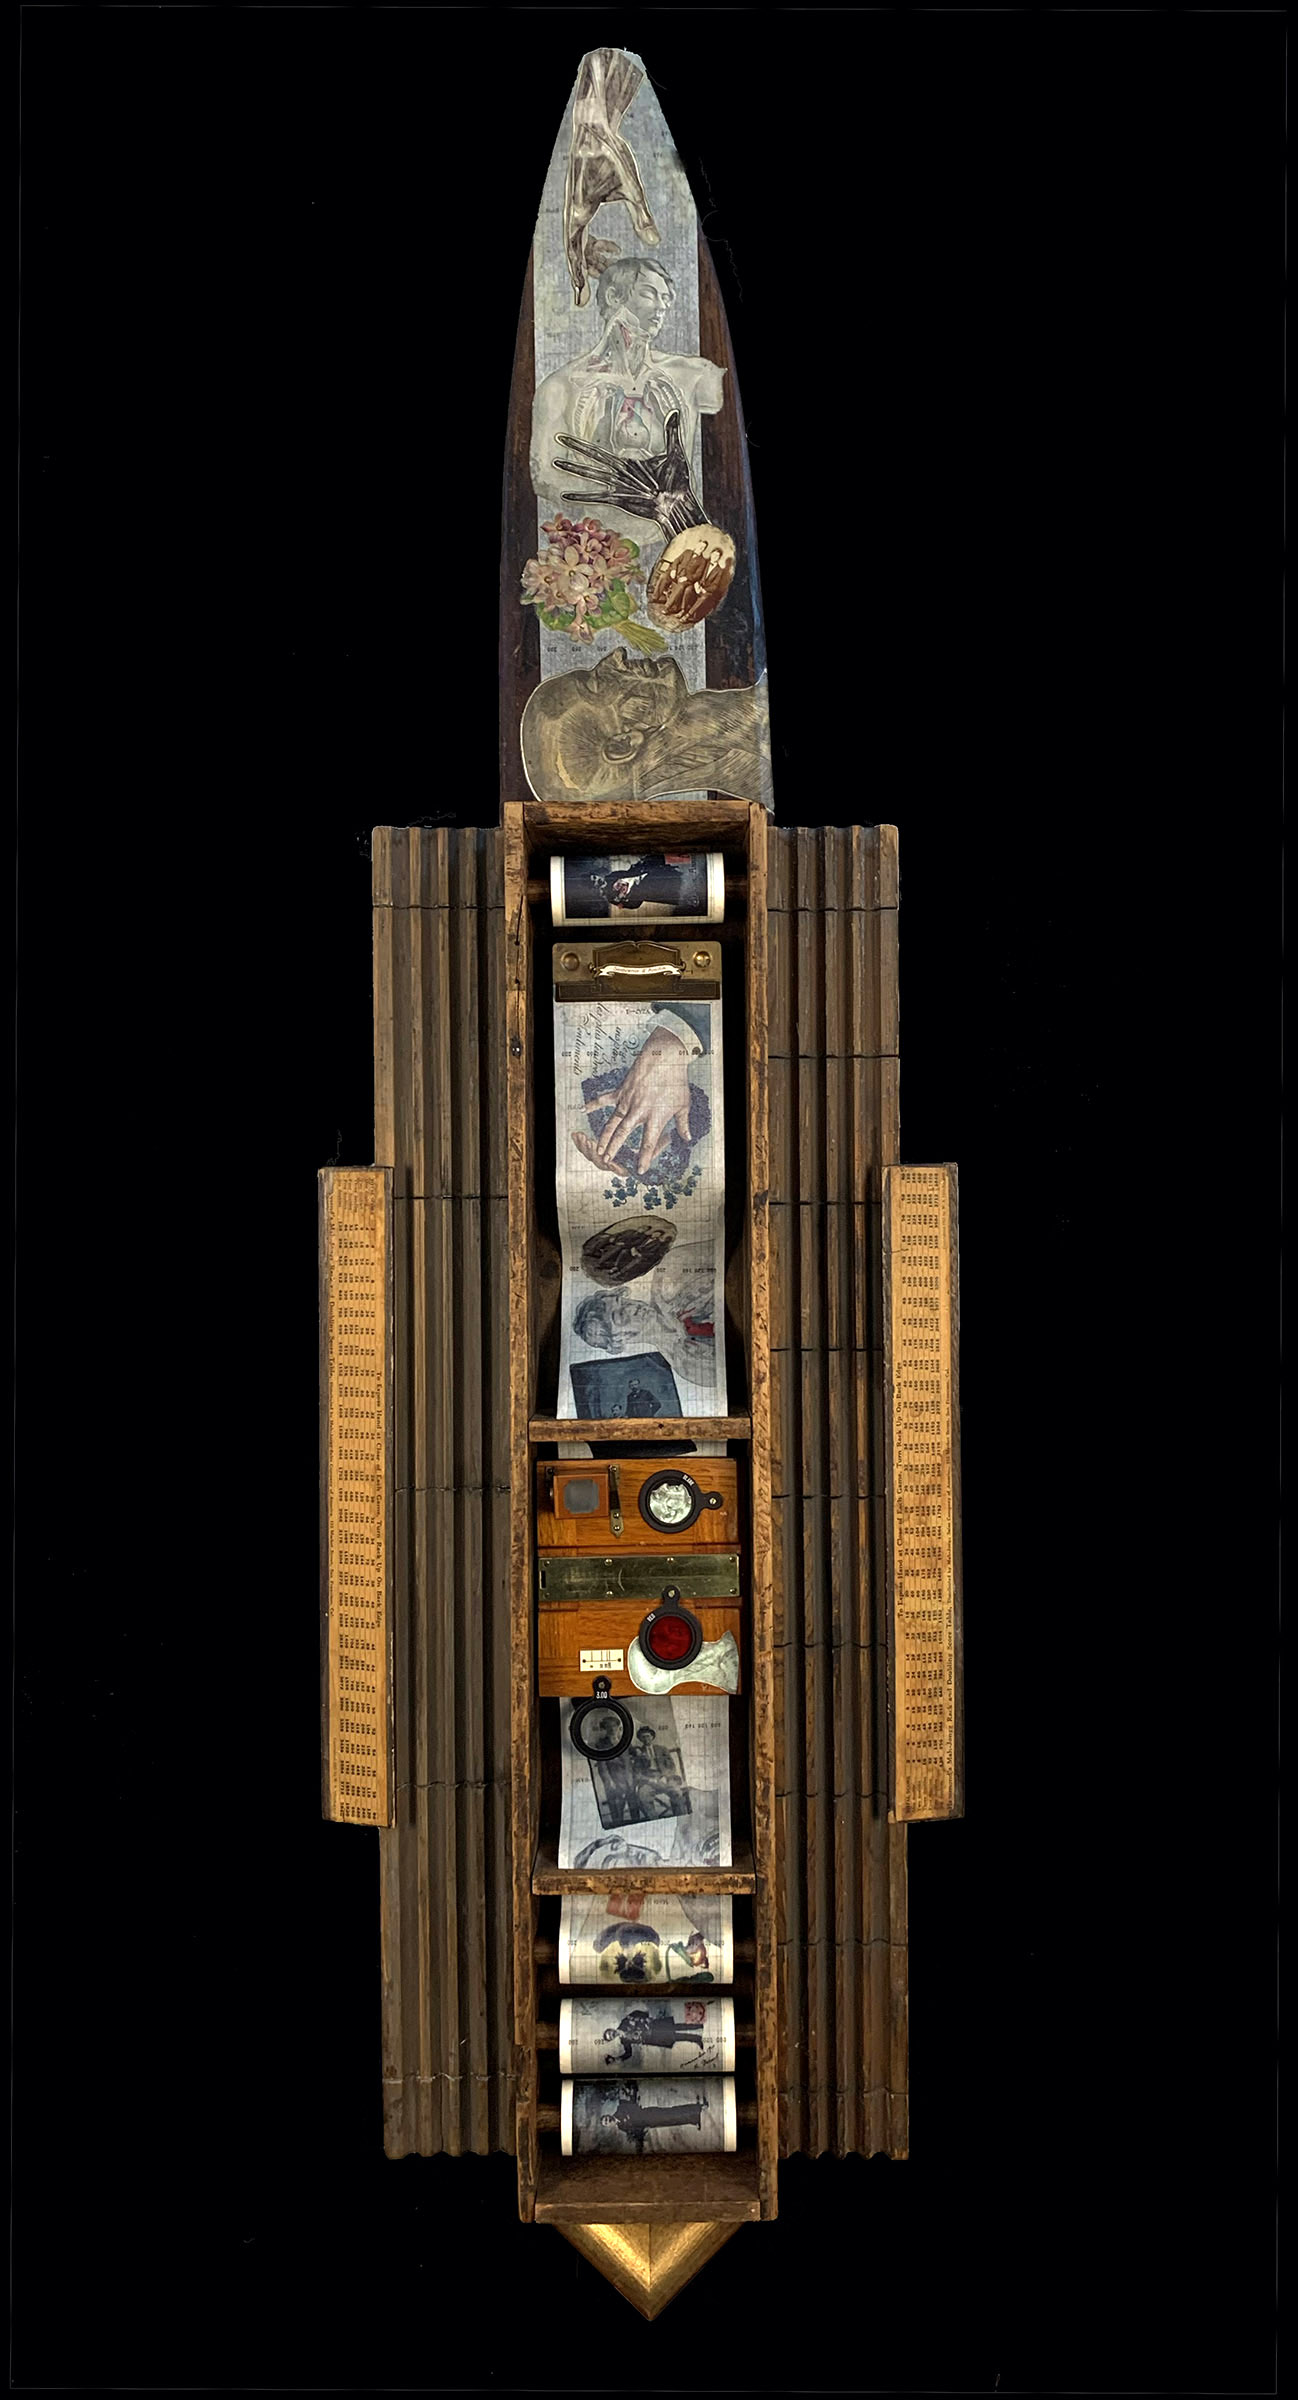 """""""As Of A Dream"""" 2011  $850.00 54""""h x 15.5""""w x 3.5""""d mixed media assemblage: wood box, chalk molds, wood pelt stretcher, wood mah-jongg trays, metal clip board, vintage wood camera parts, optical lenses, frame sample, vintage photos, digital scans, graphic paper recording rolls"""